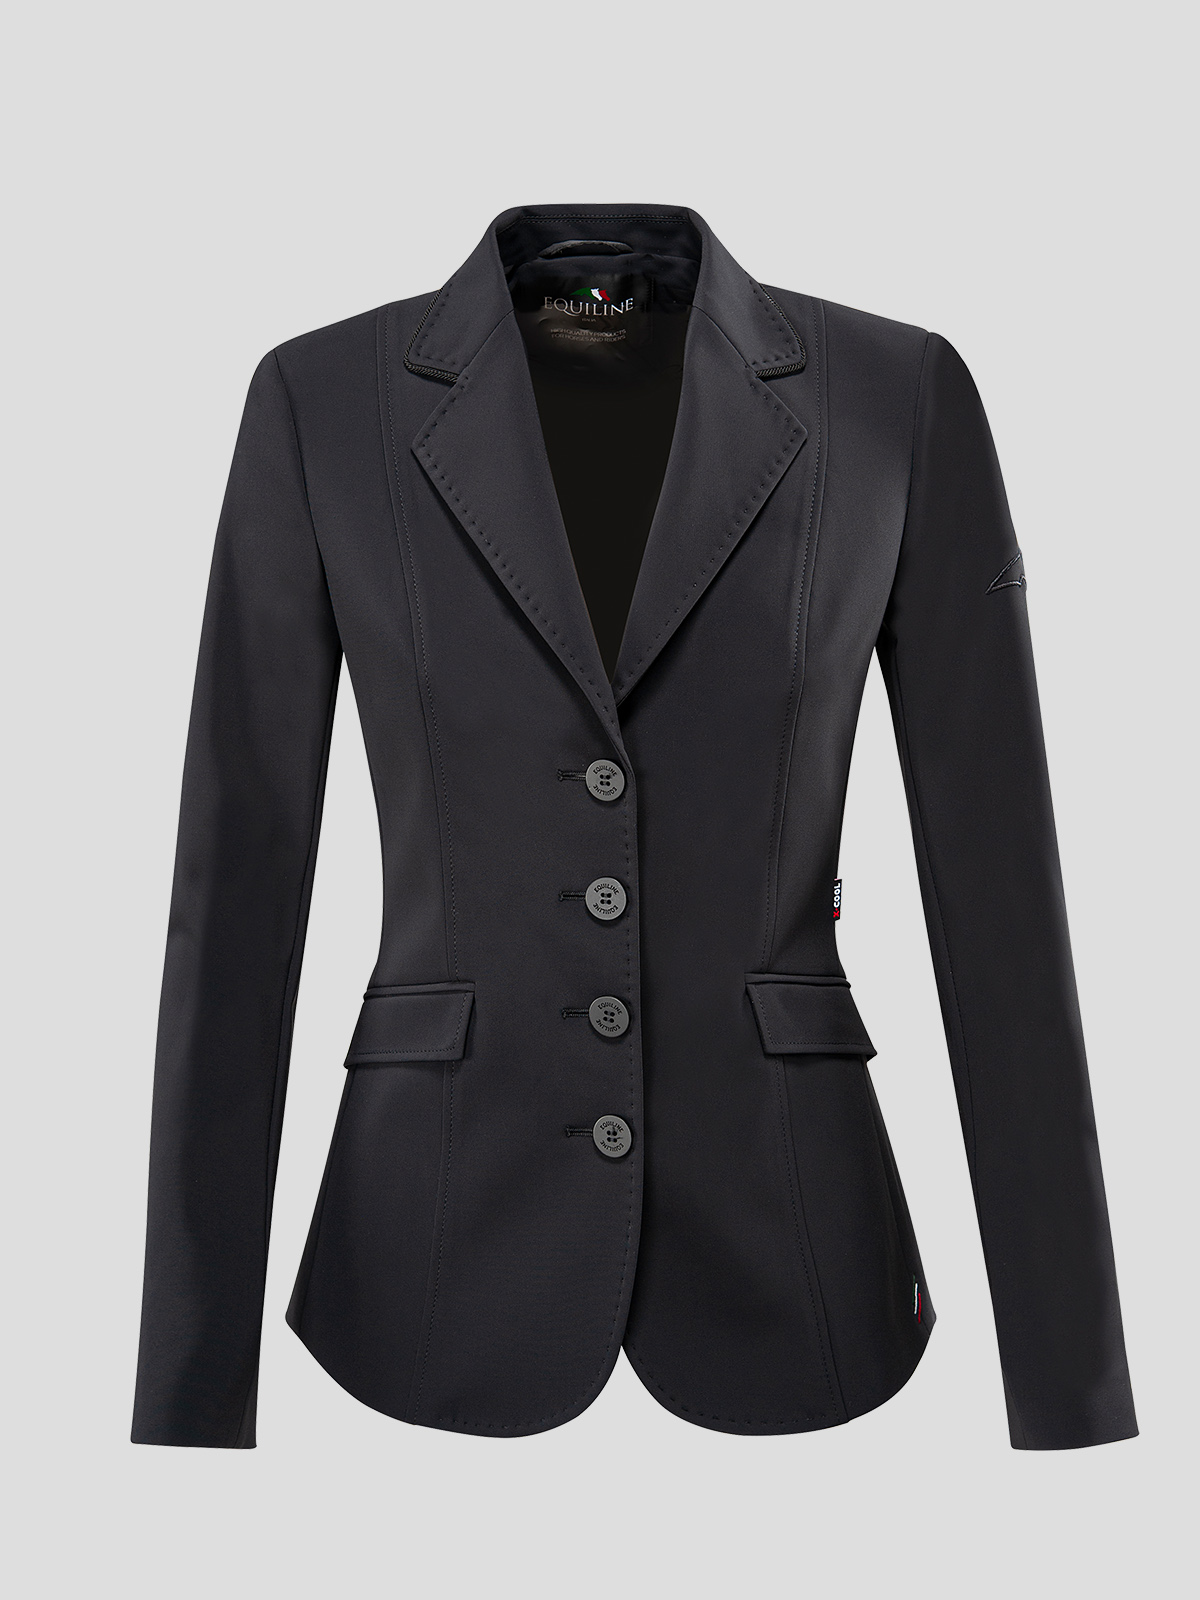 WOMEN'S SHOW JACKET WITH OUTLINE LOGO IN X-COOL 6